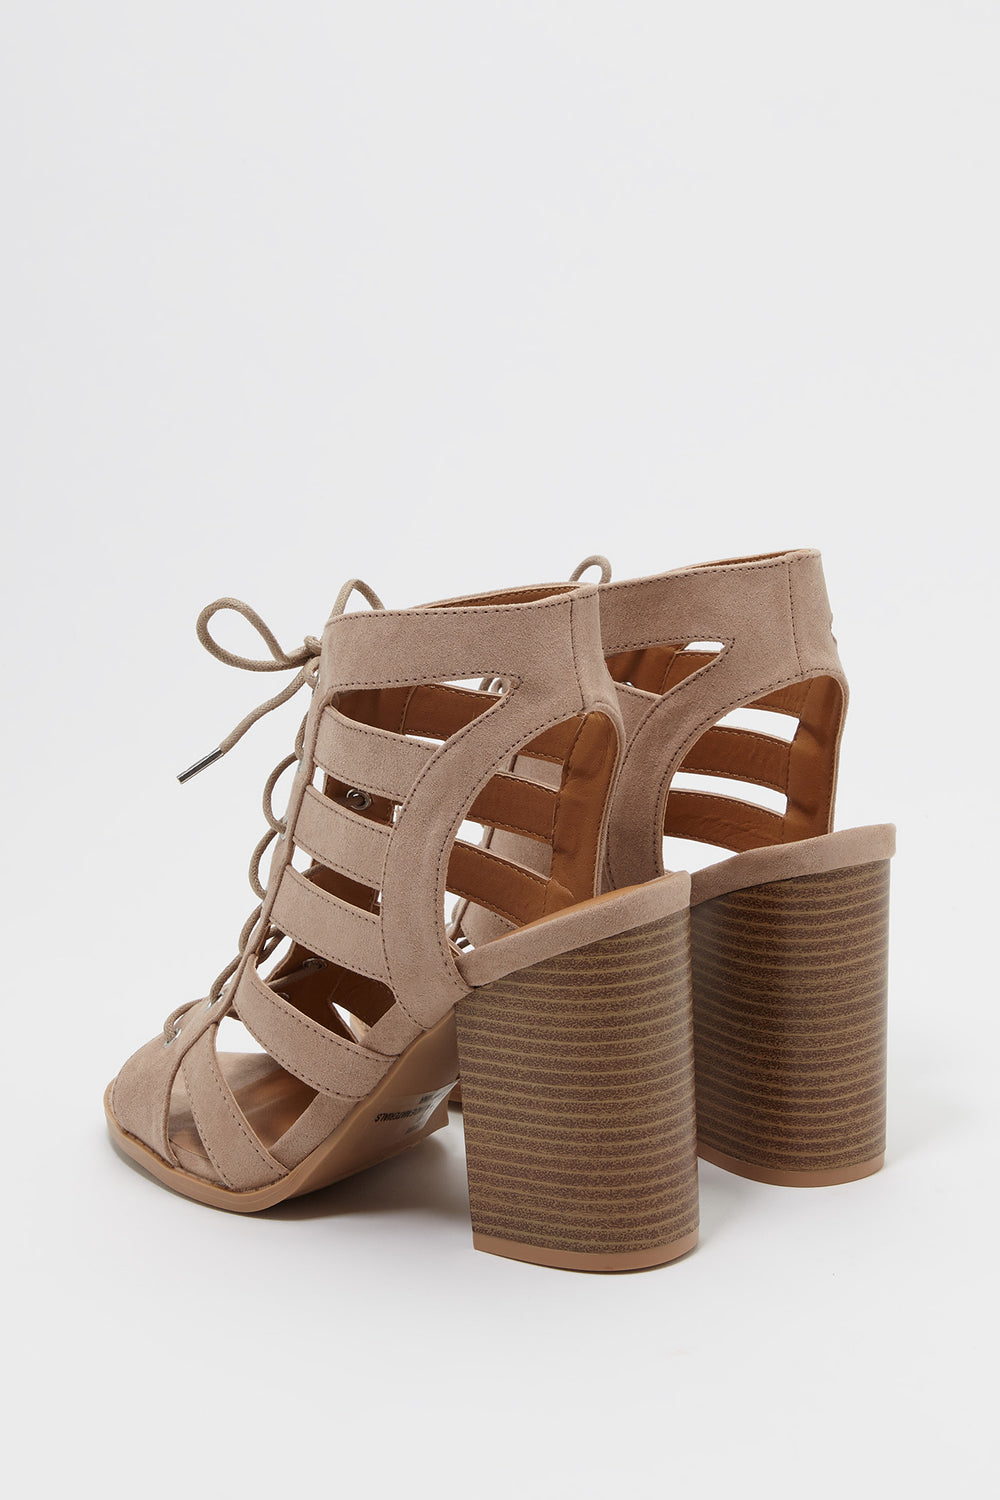 Lace Up Faux-Suede Block Heel Sandal Taupe